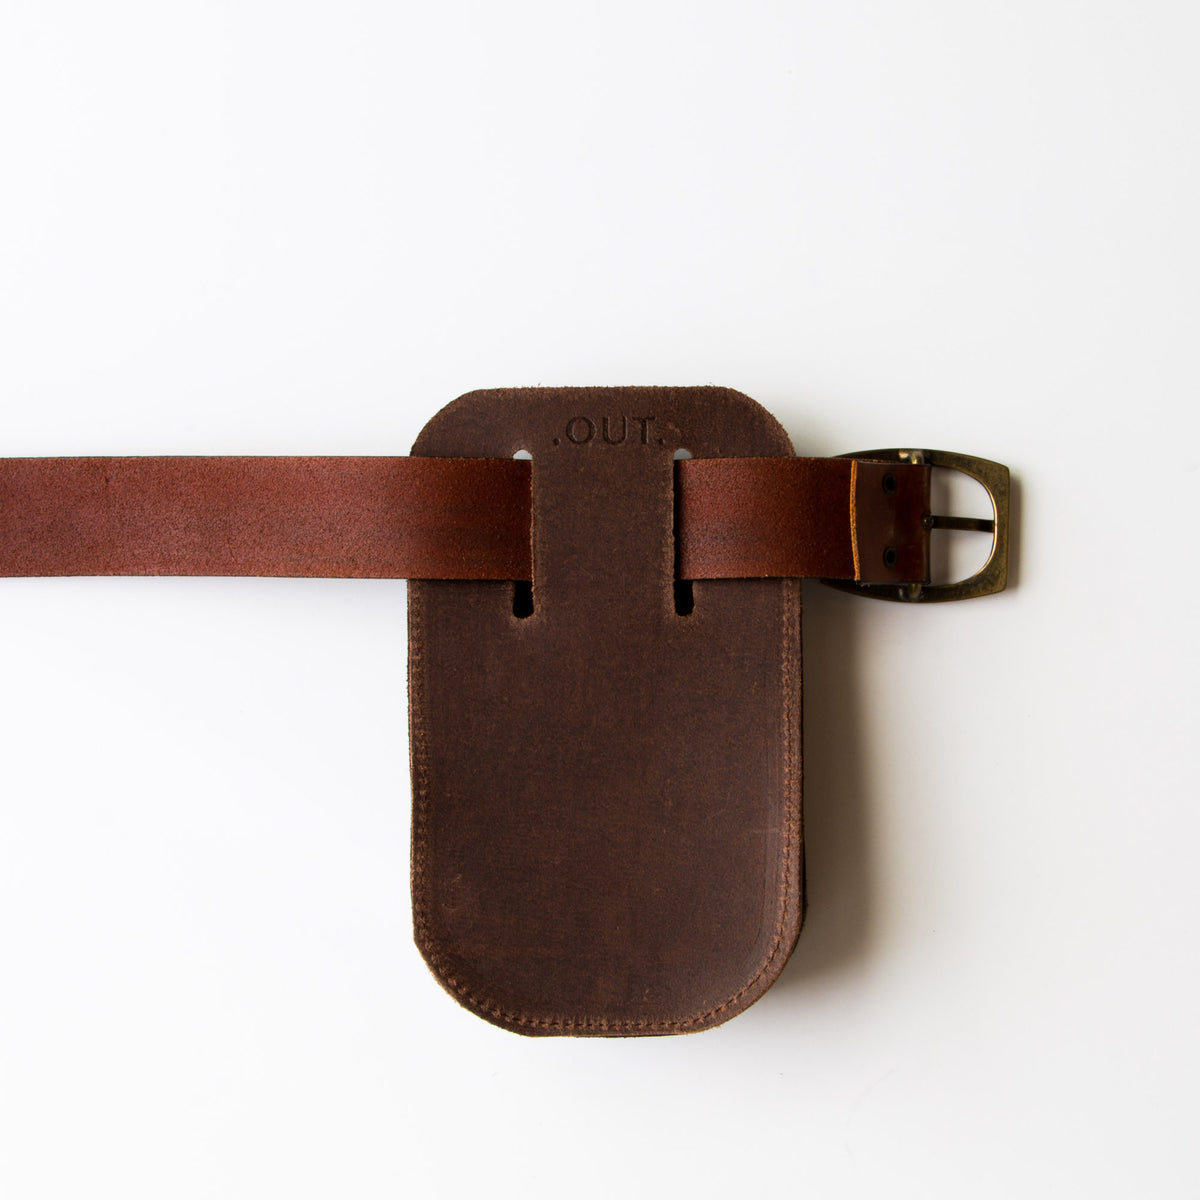 Back View - Leather & Felt Tool Holder / Pouch - Handmade in Canada - Chic & Basta